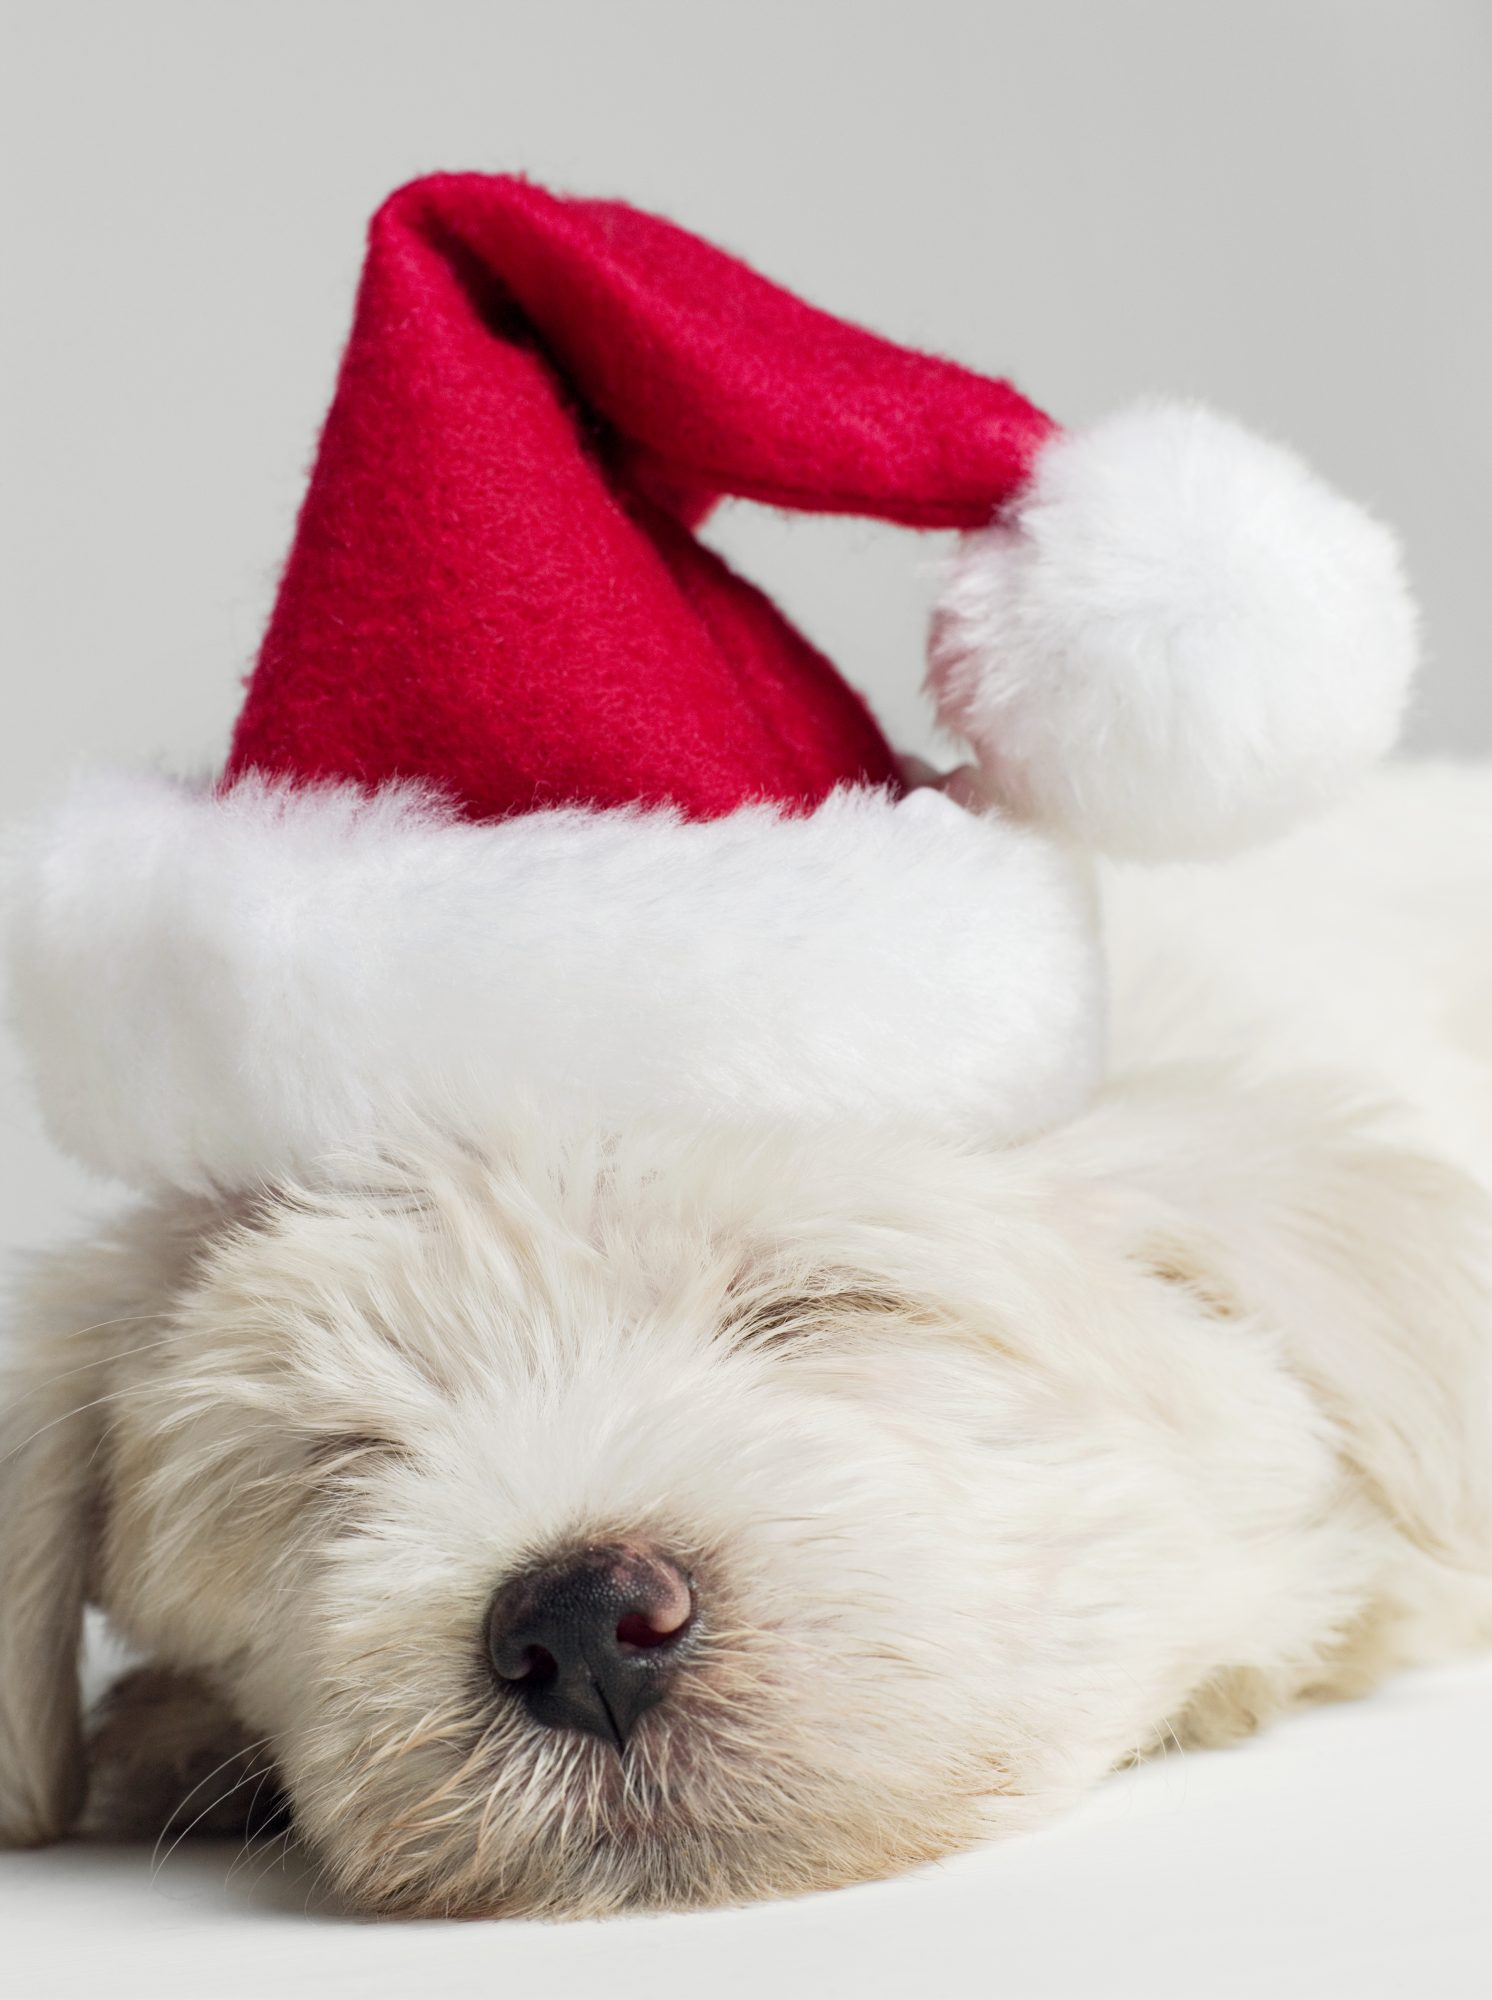 Sleeping Puppy In Santa Hat